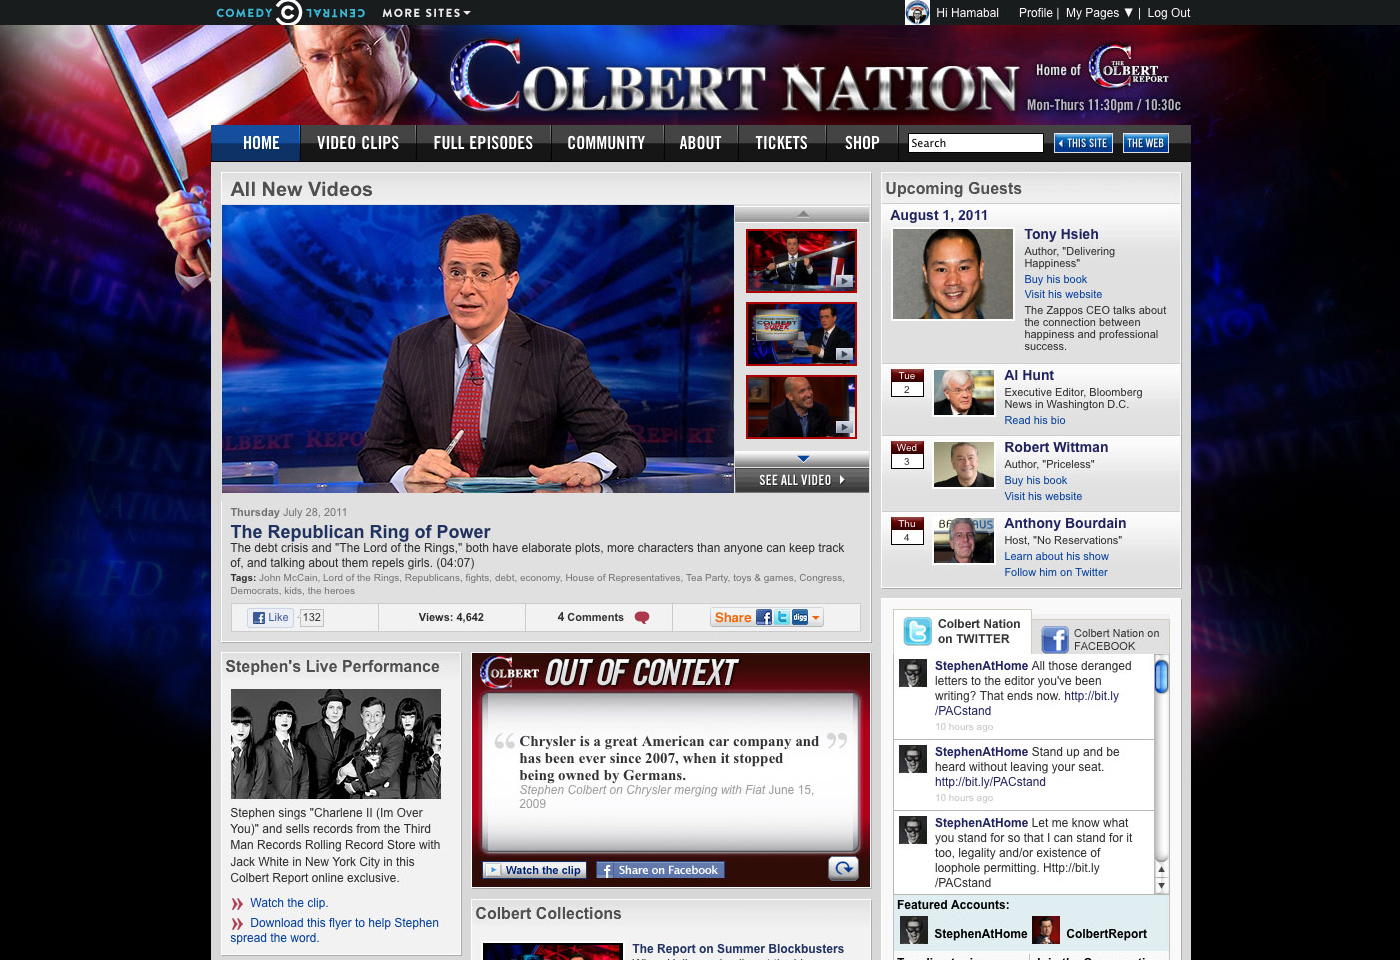 colbertNation_refresh_01c_crobB